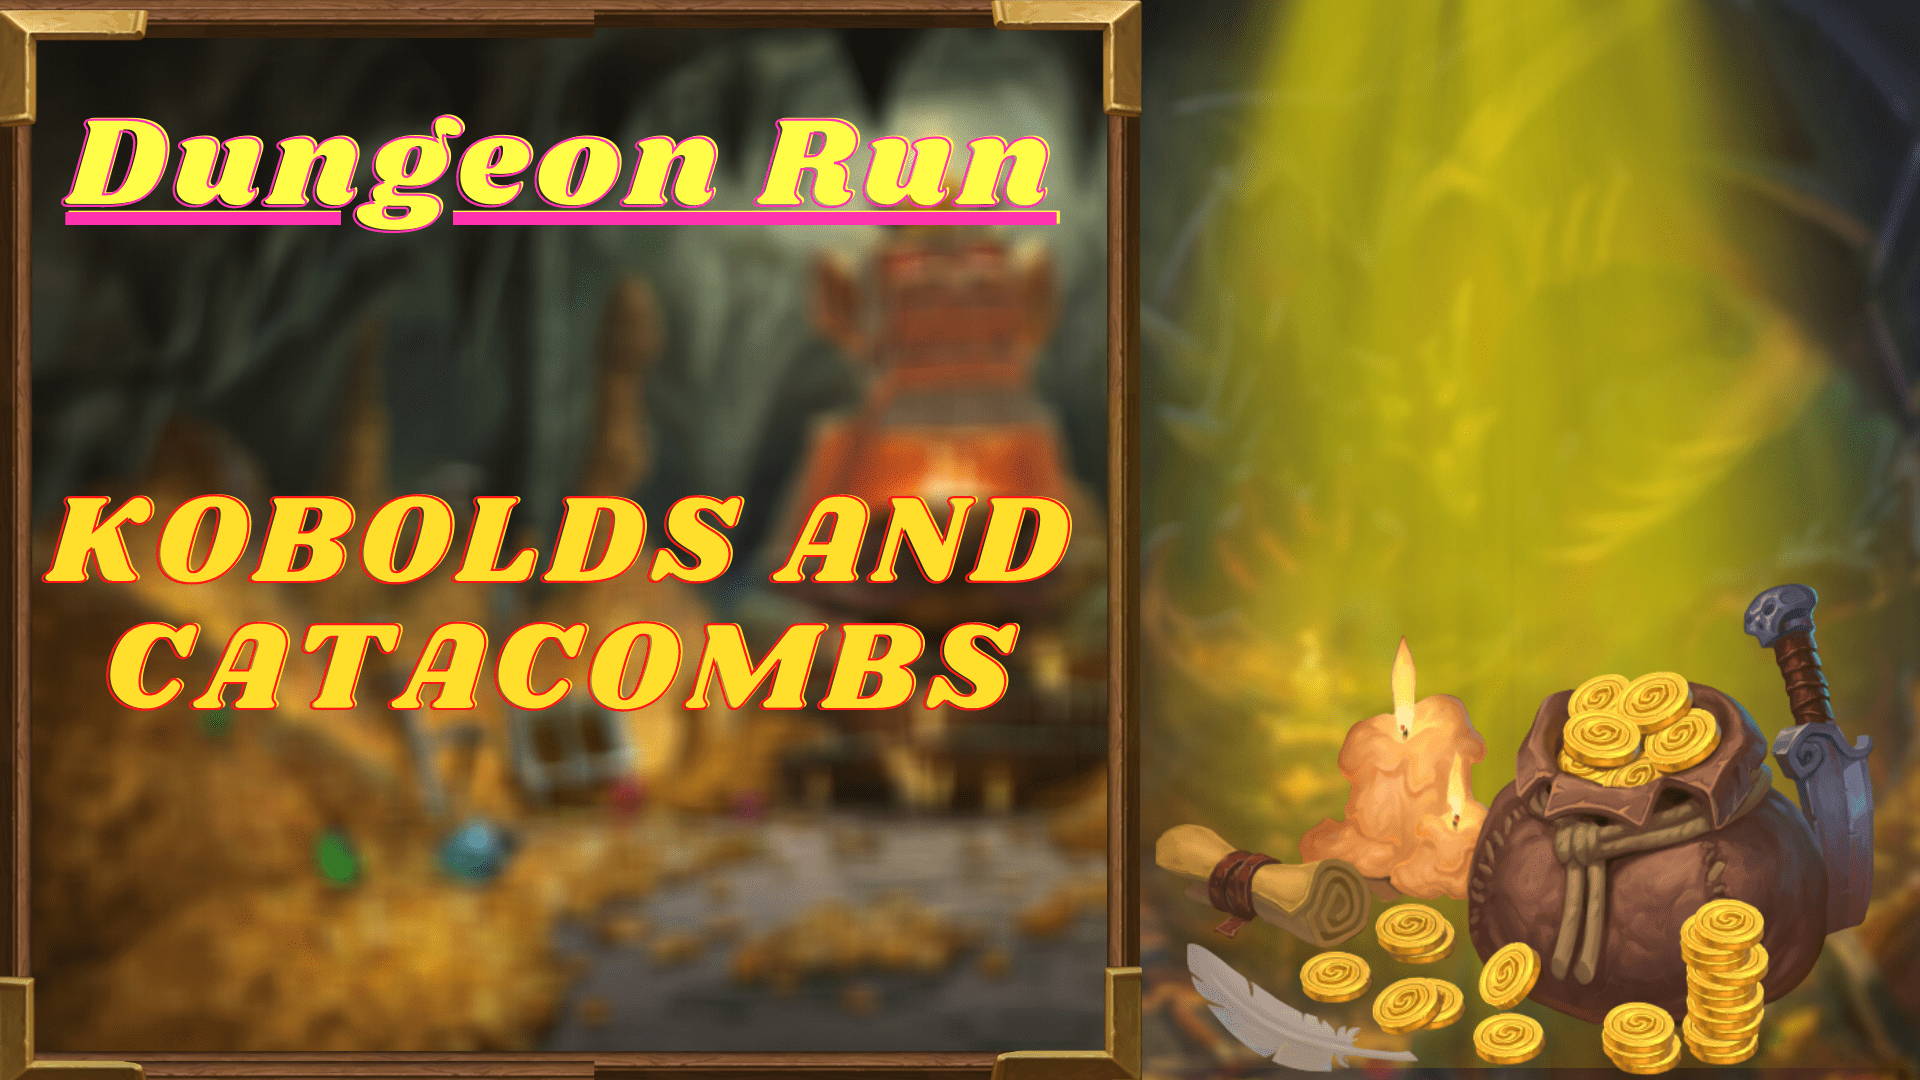 Dungeon run: Kobolds and Catacombs Zafari - e2p.com